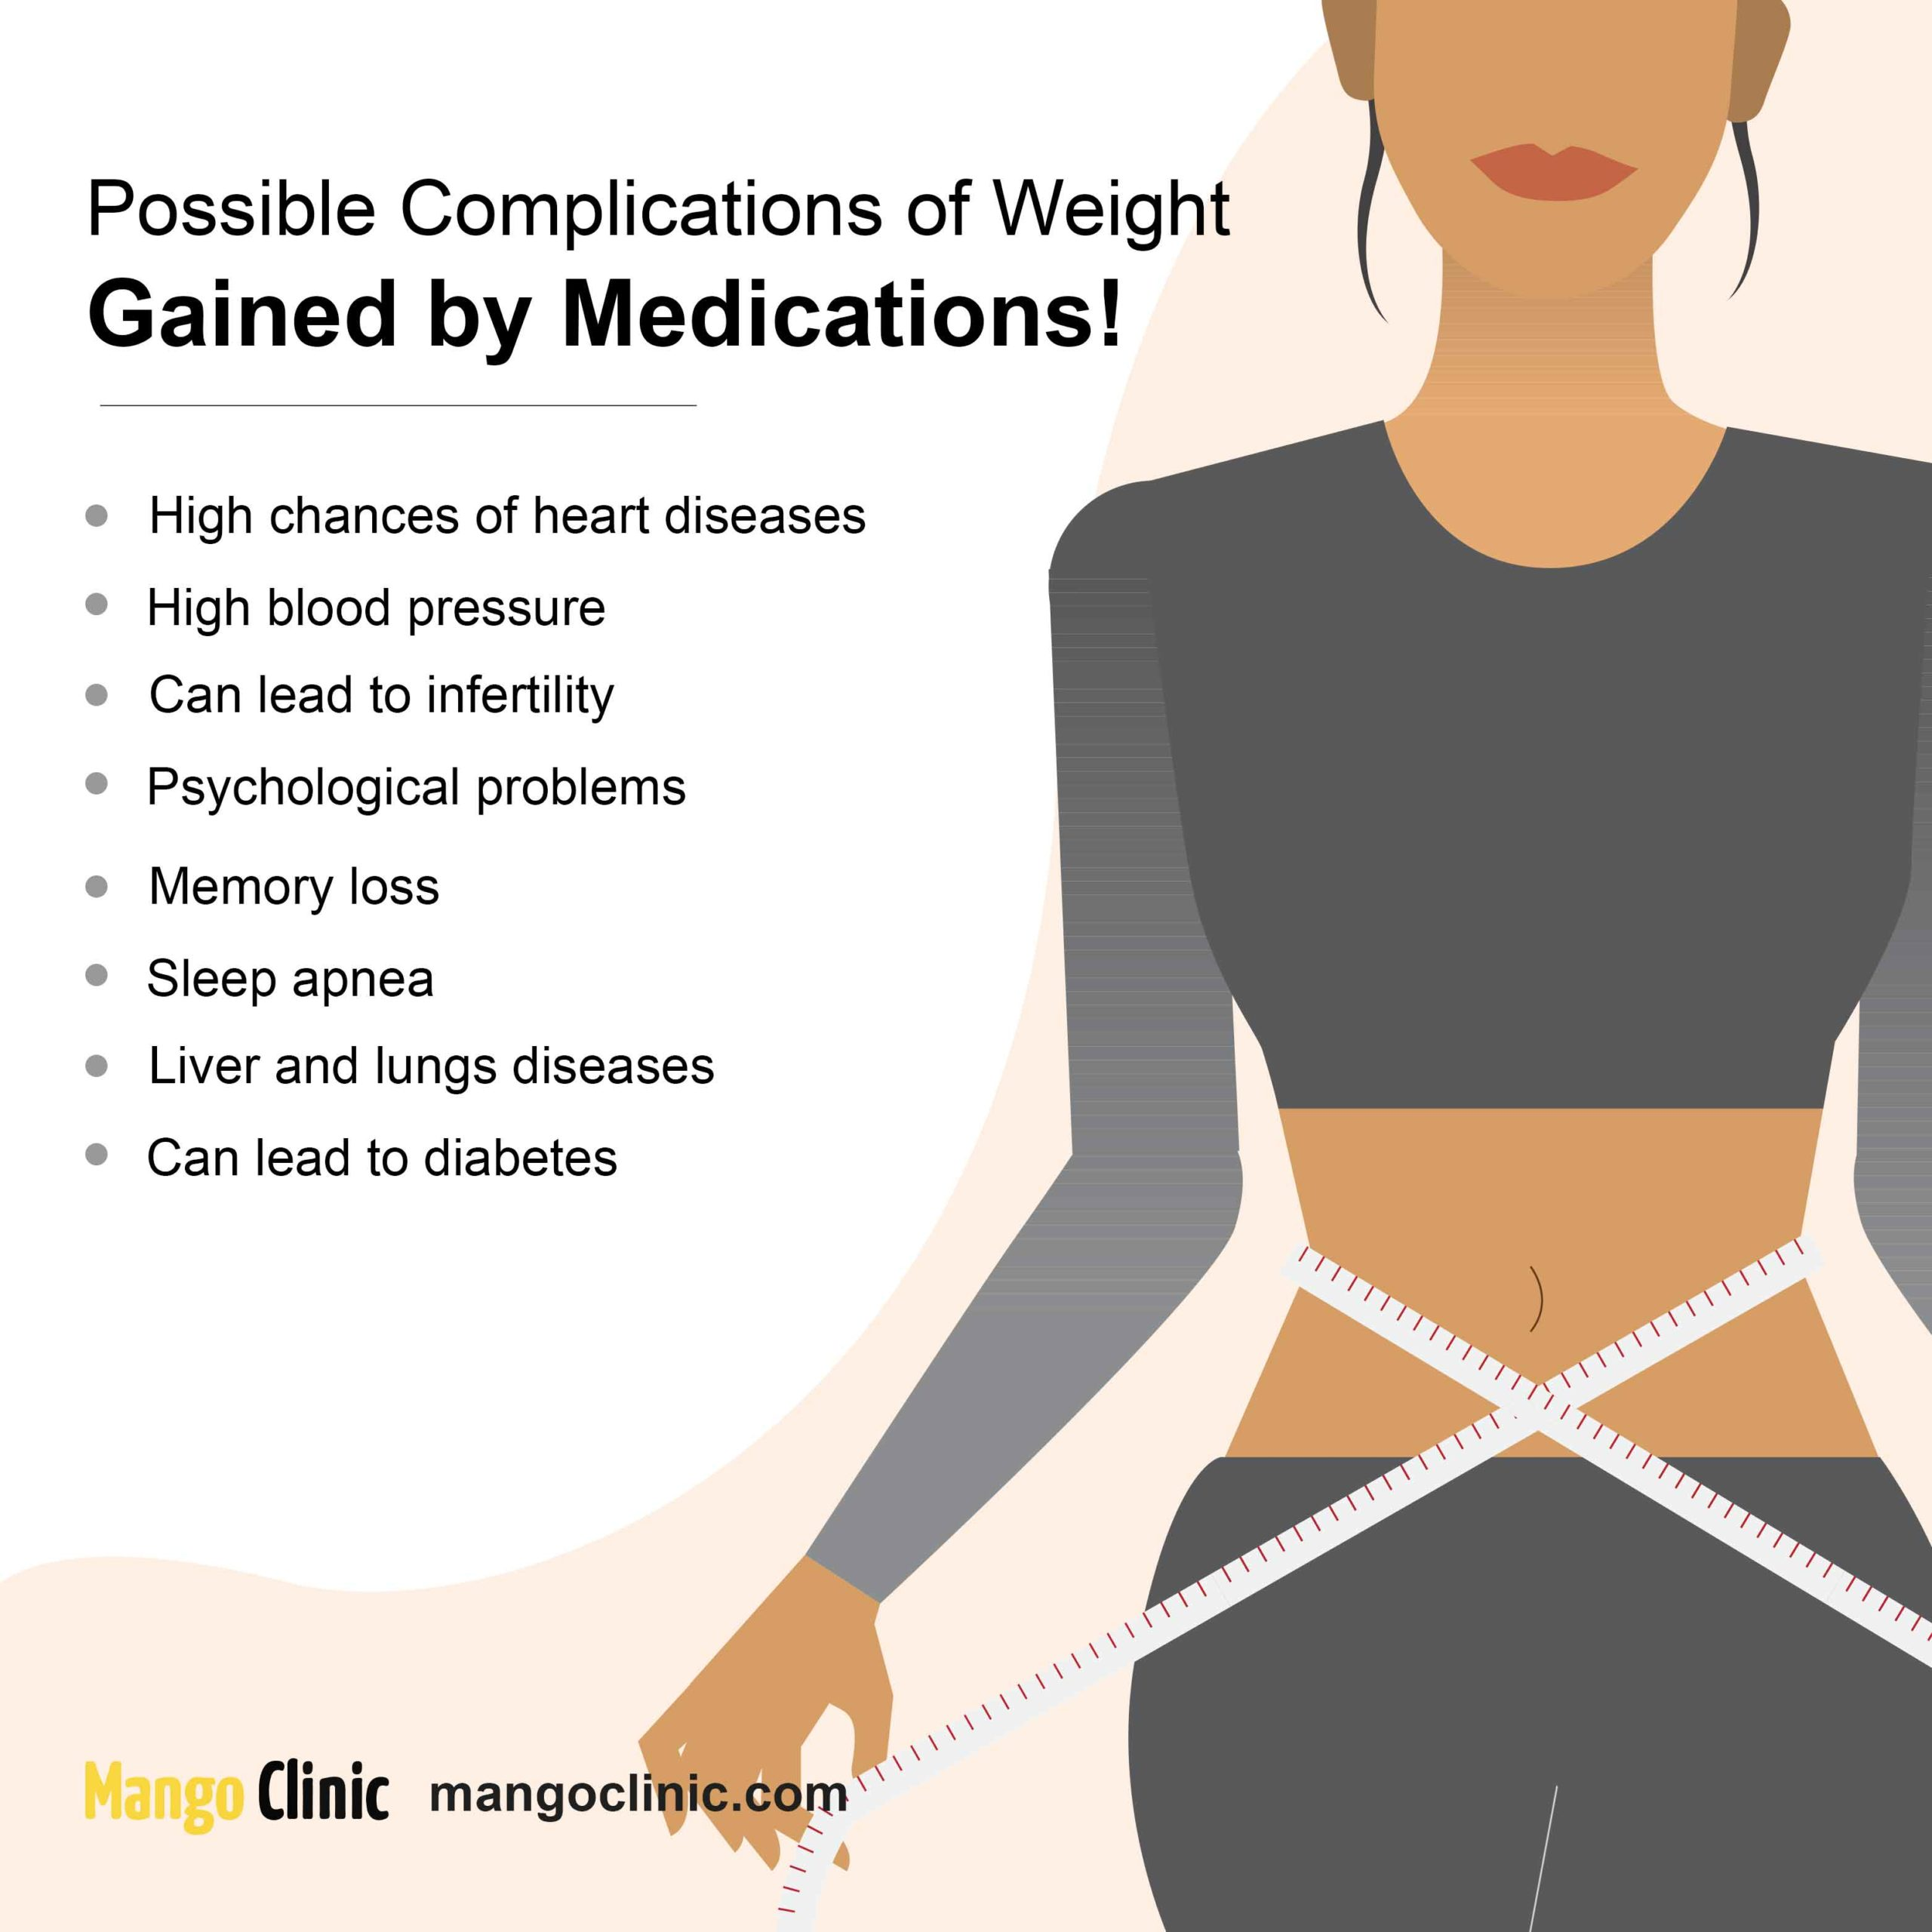 Possible complications of weight gained by medications!